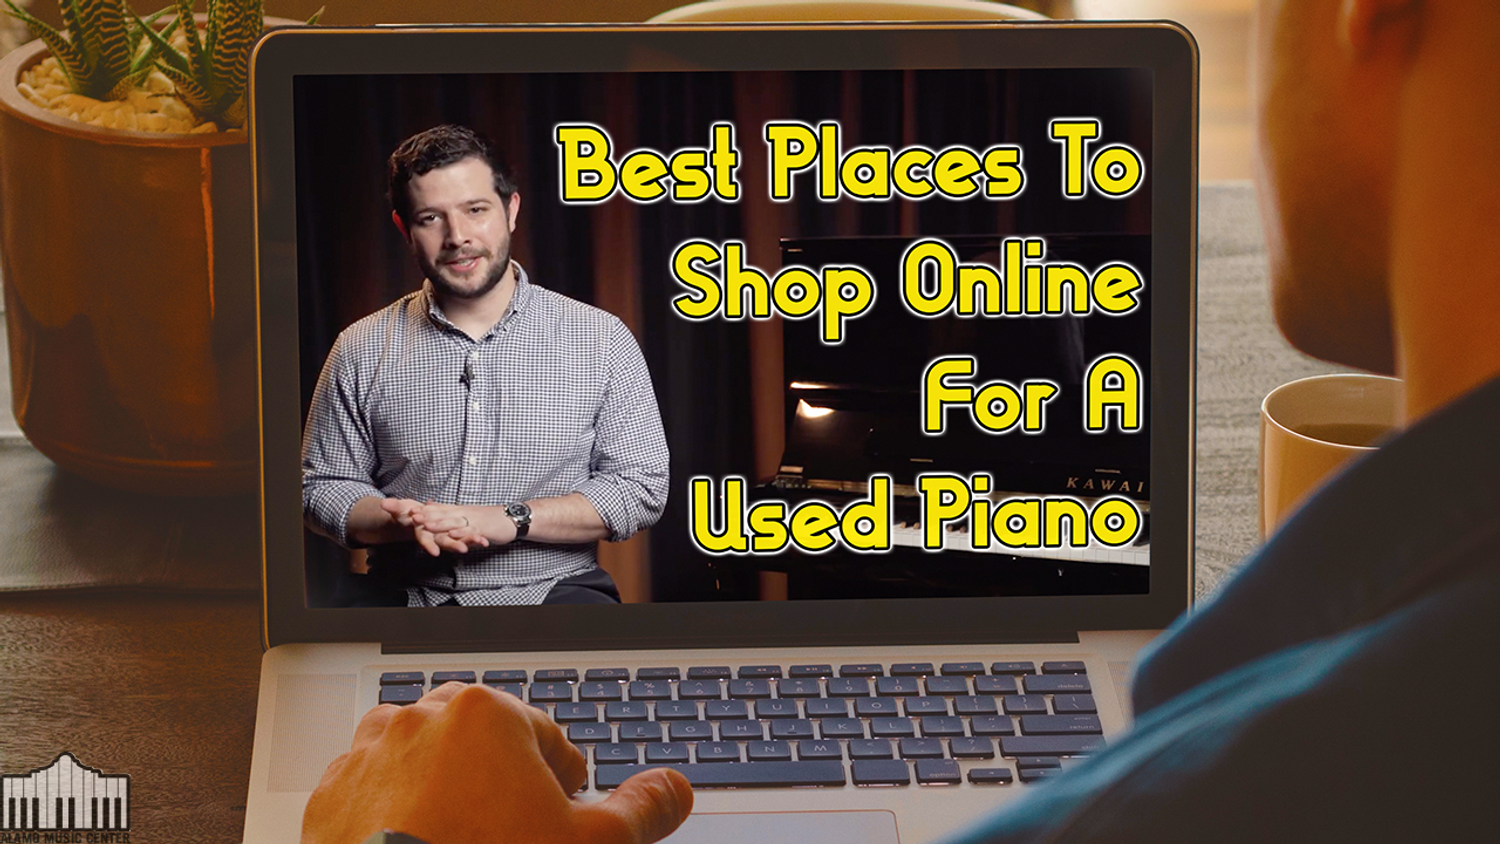 Best Places To Shop Online For A Used Piano